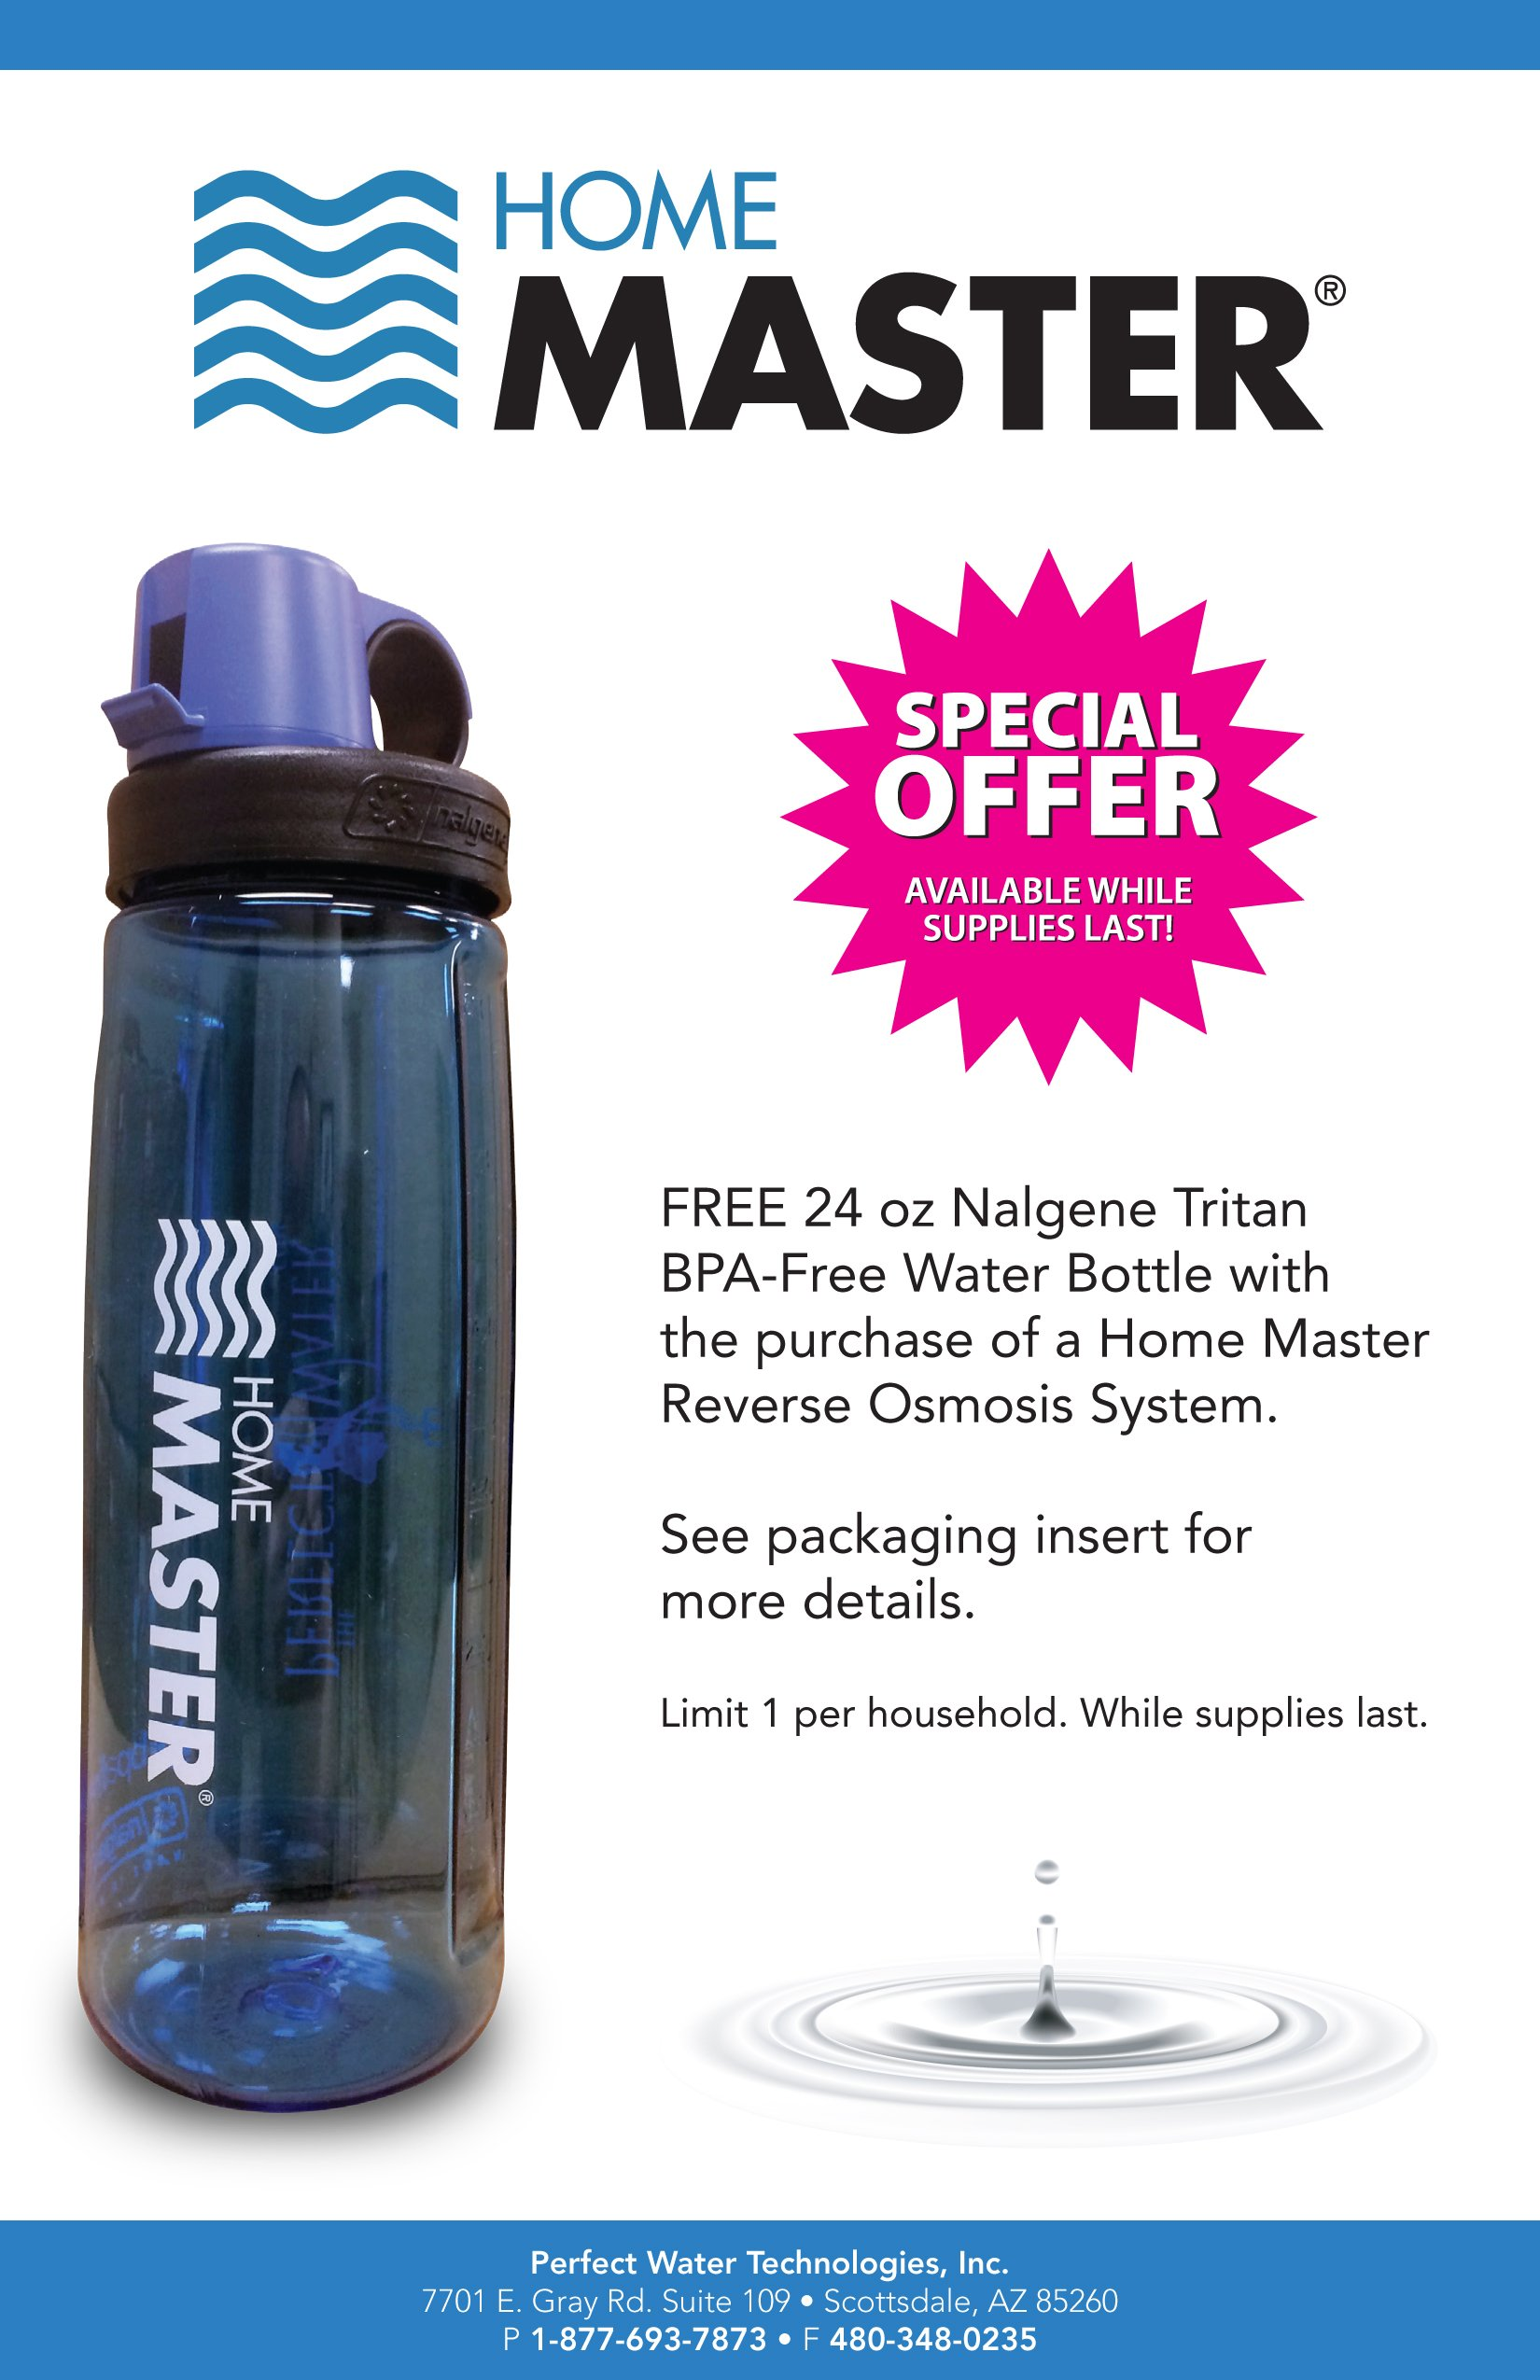 Home Master TMHP HydroPerfection Undersink Reverse Osmosis Water Filter System by Home Master (Image #4)